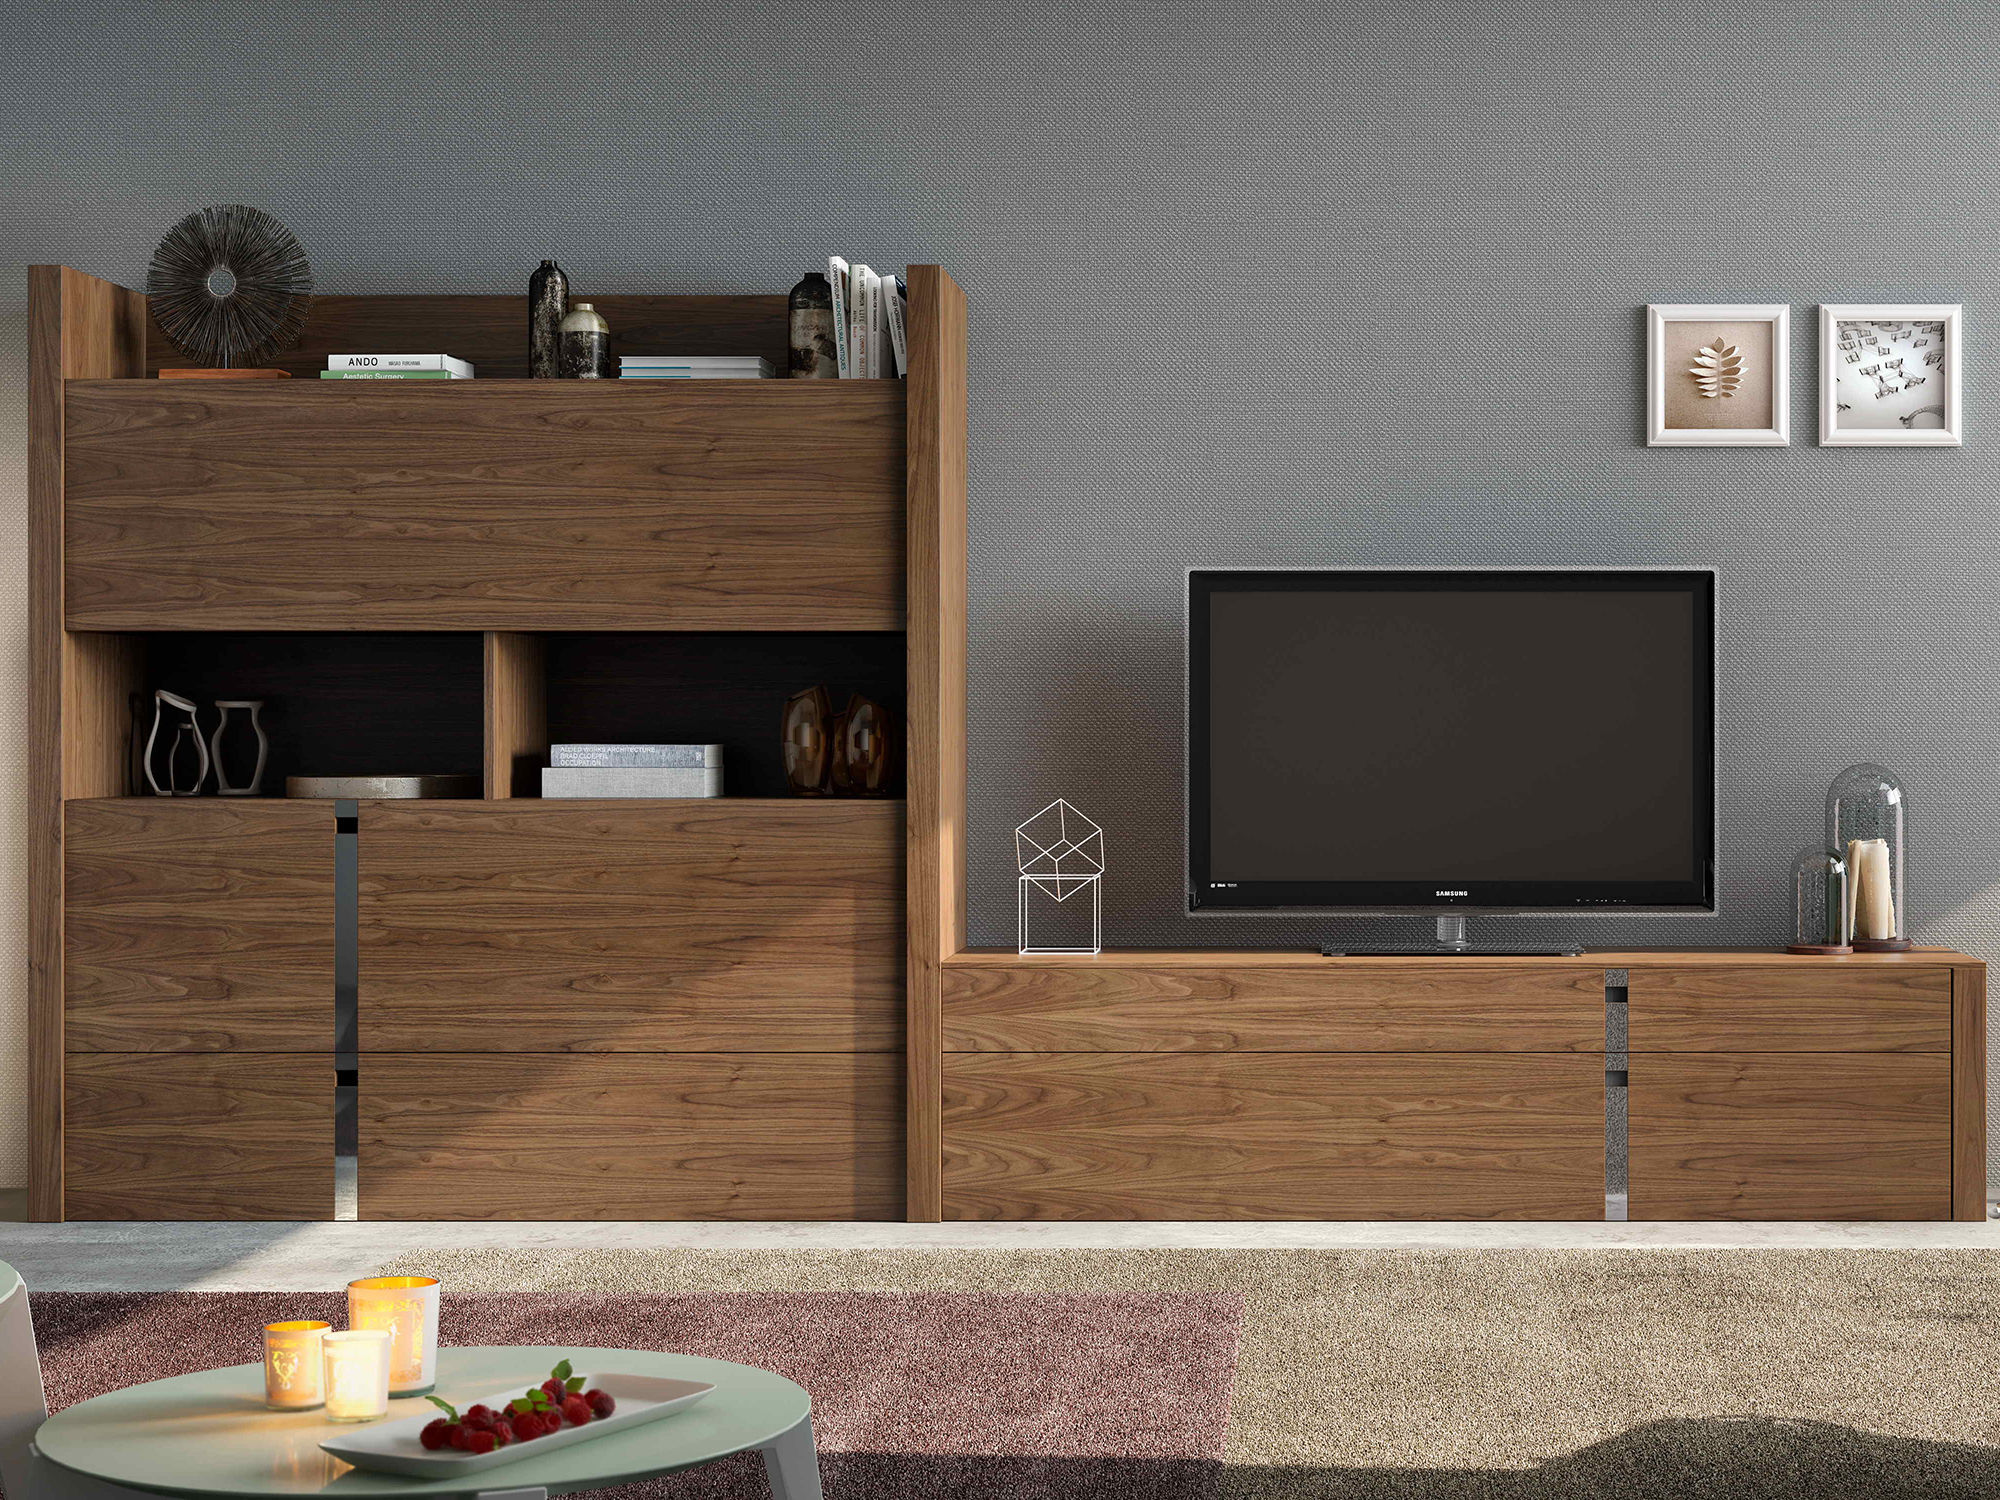 Contemporary Tv Wall Unit Wooden Impersonal2k15 18 Piferrer # Muebles Piferrer Iline